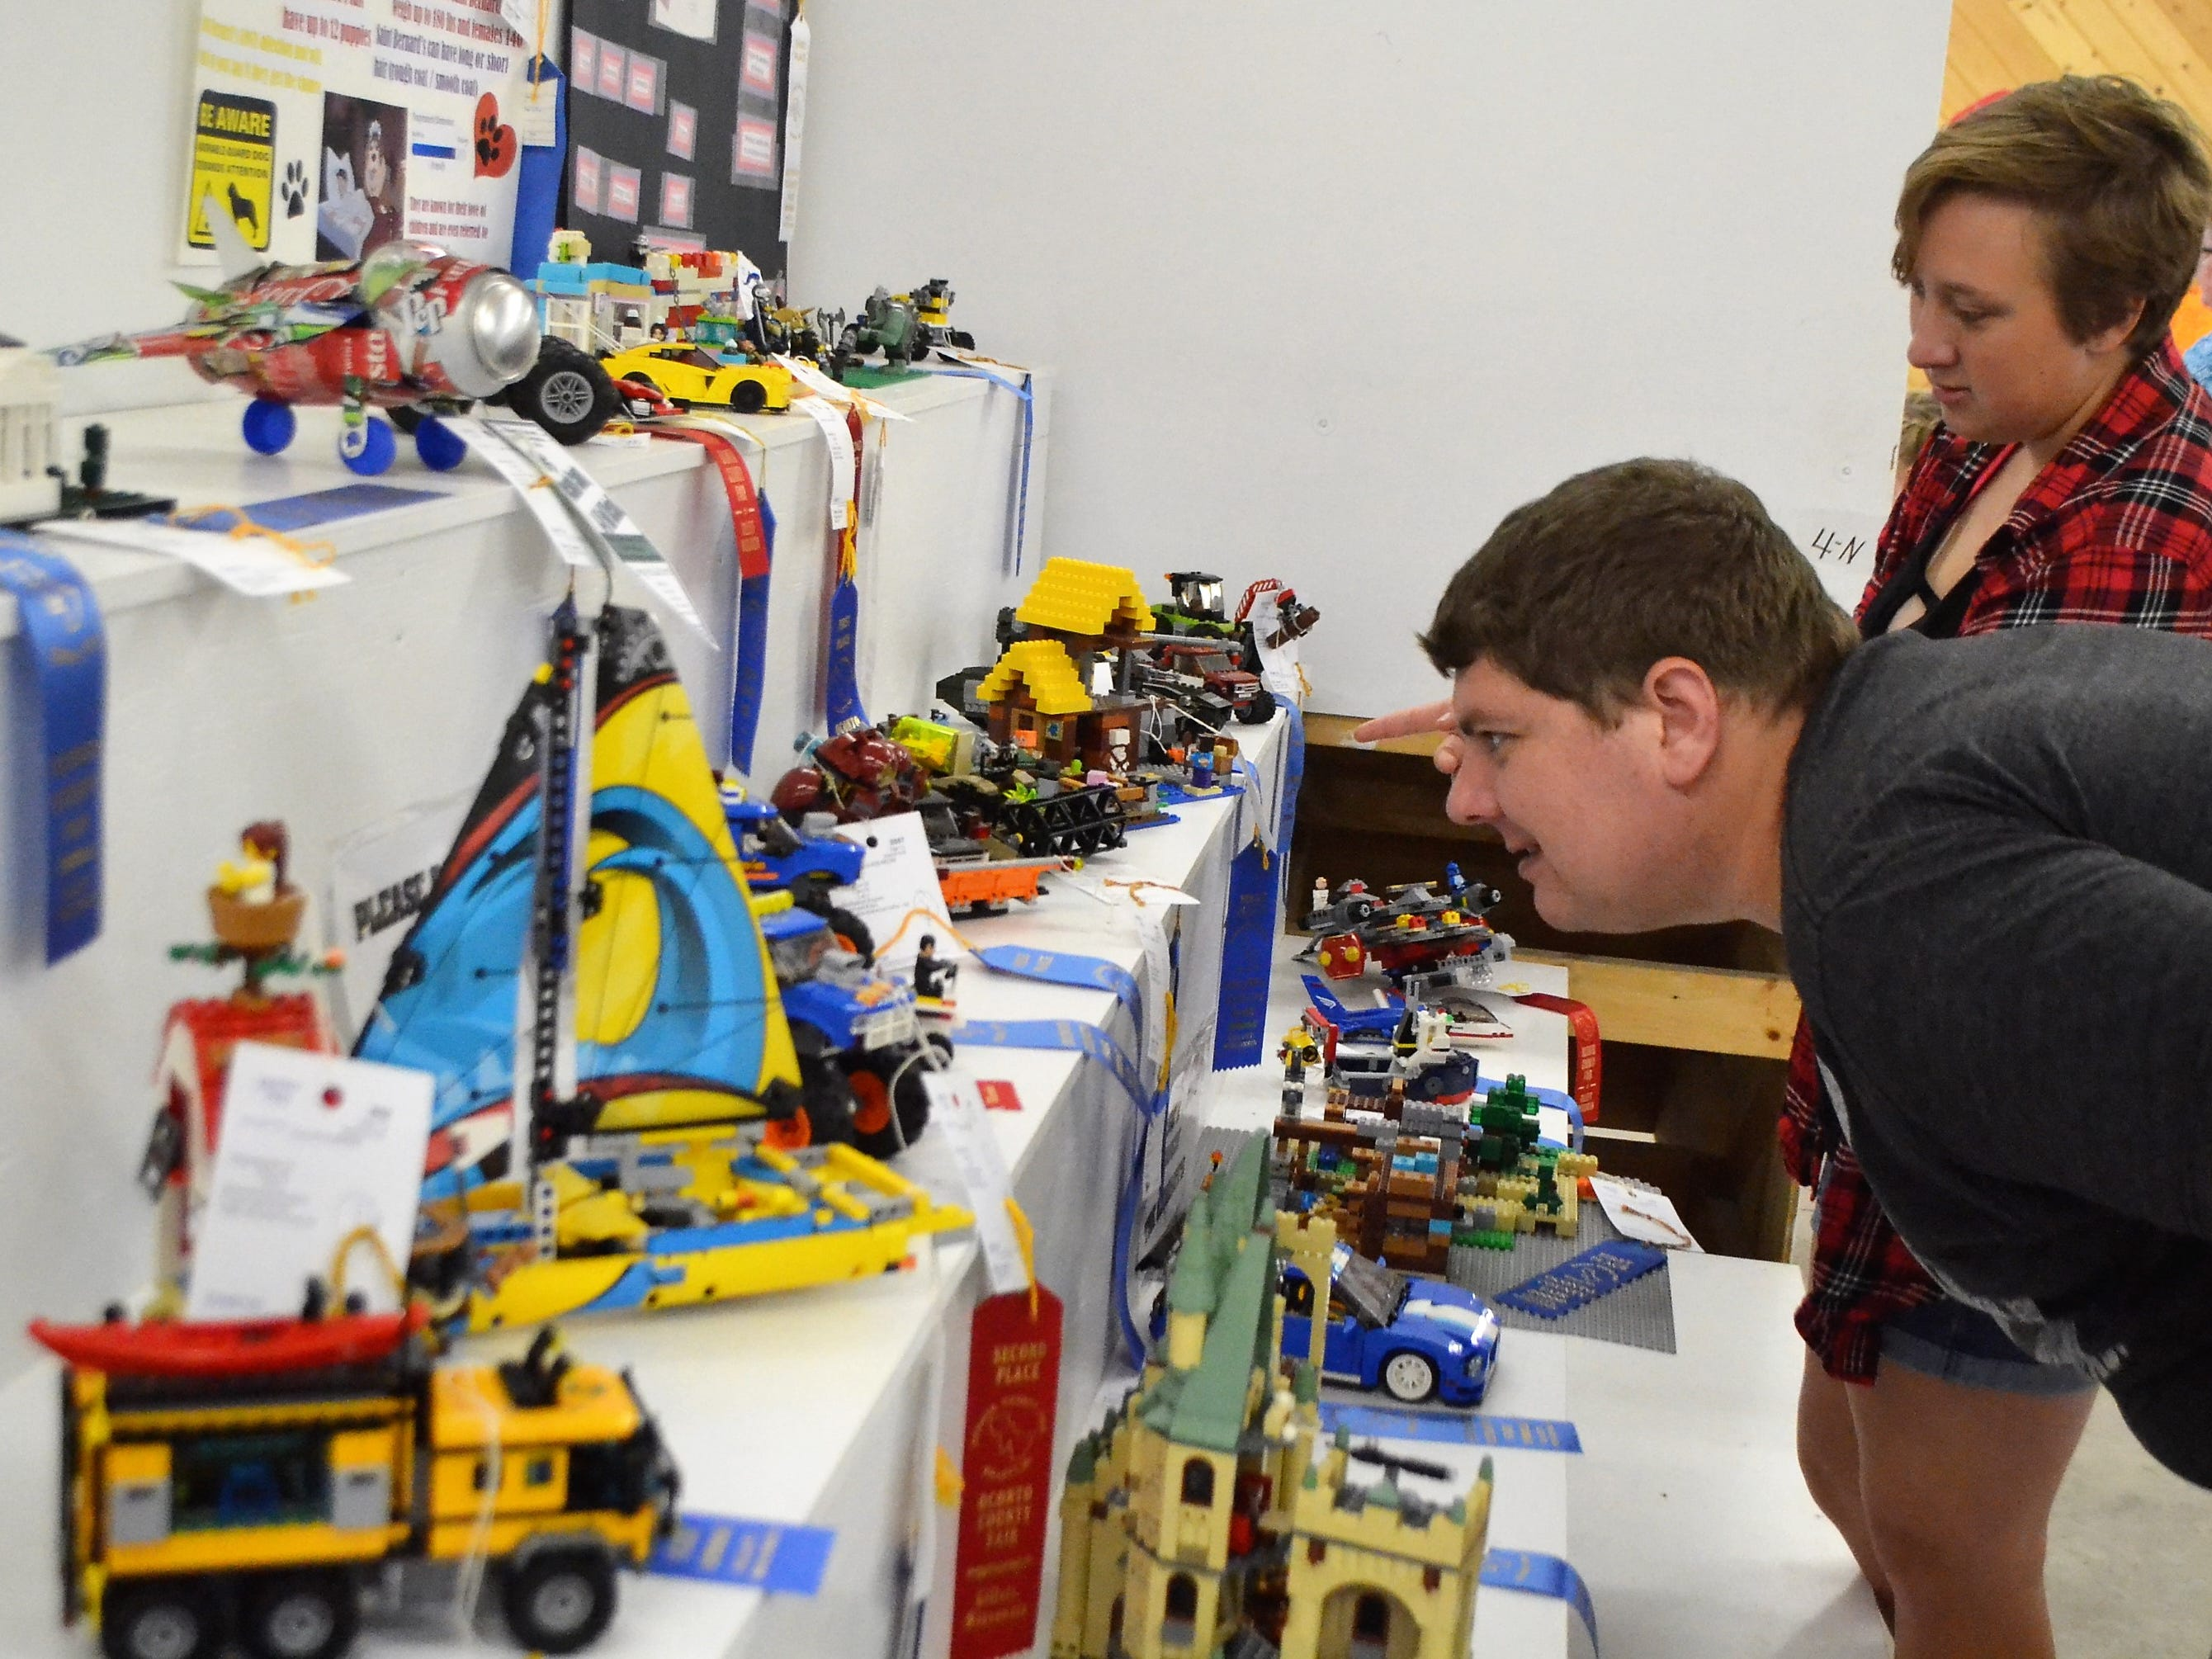 Johnny Howe of Lena takes a close look Saturday, Aug. 18, at the Lego creations entered at the Oconto County Fair, with his cousin, Naomi Wilson of West Allis.